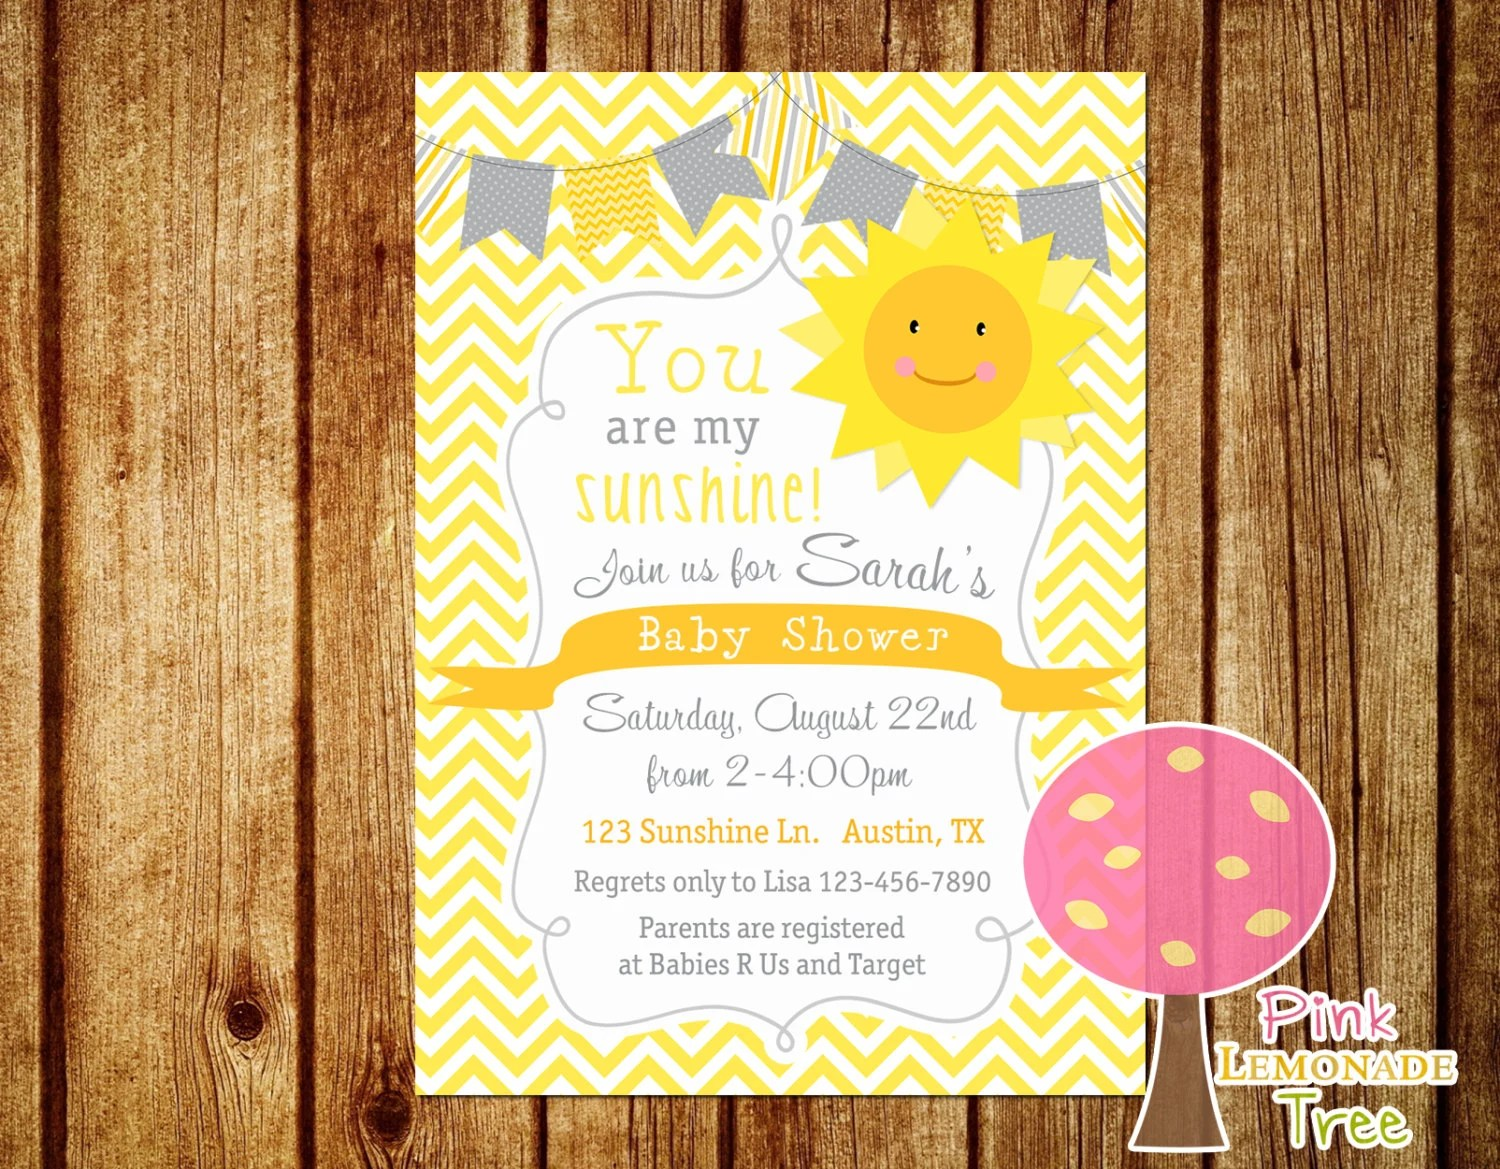 Baby Shower Invitations You Are My Sunshine